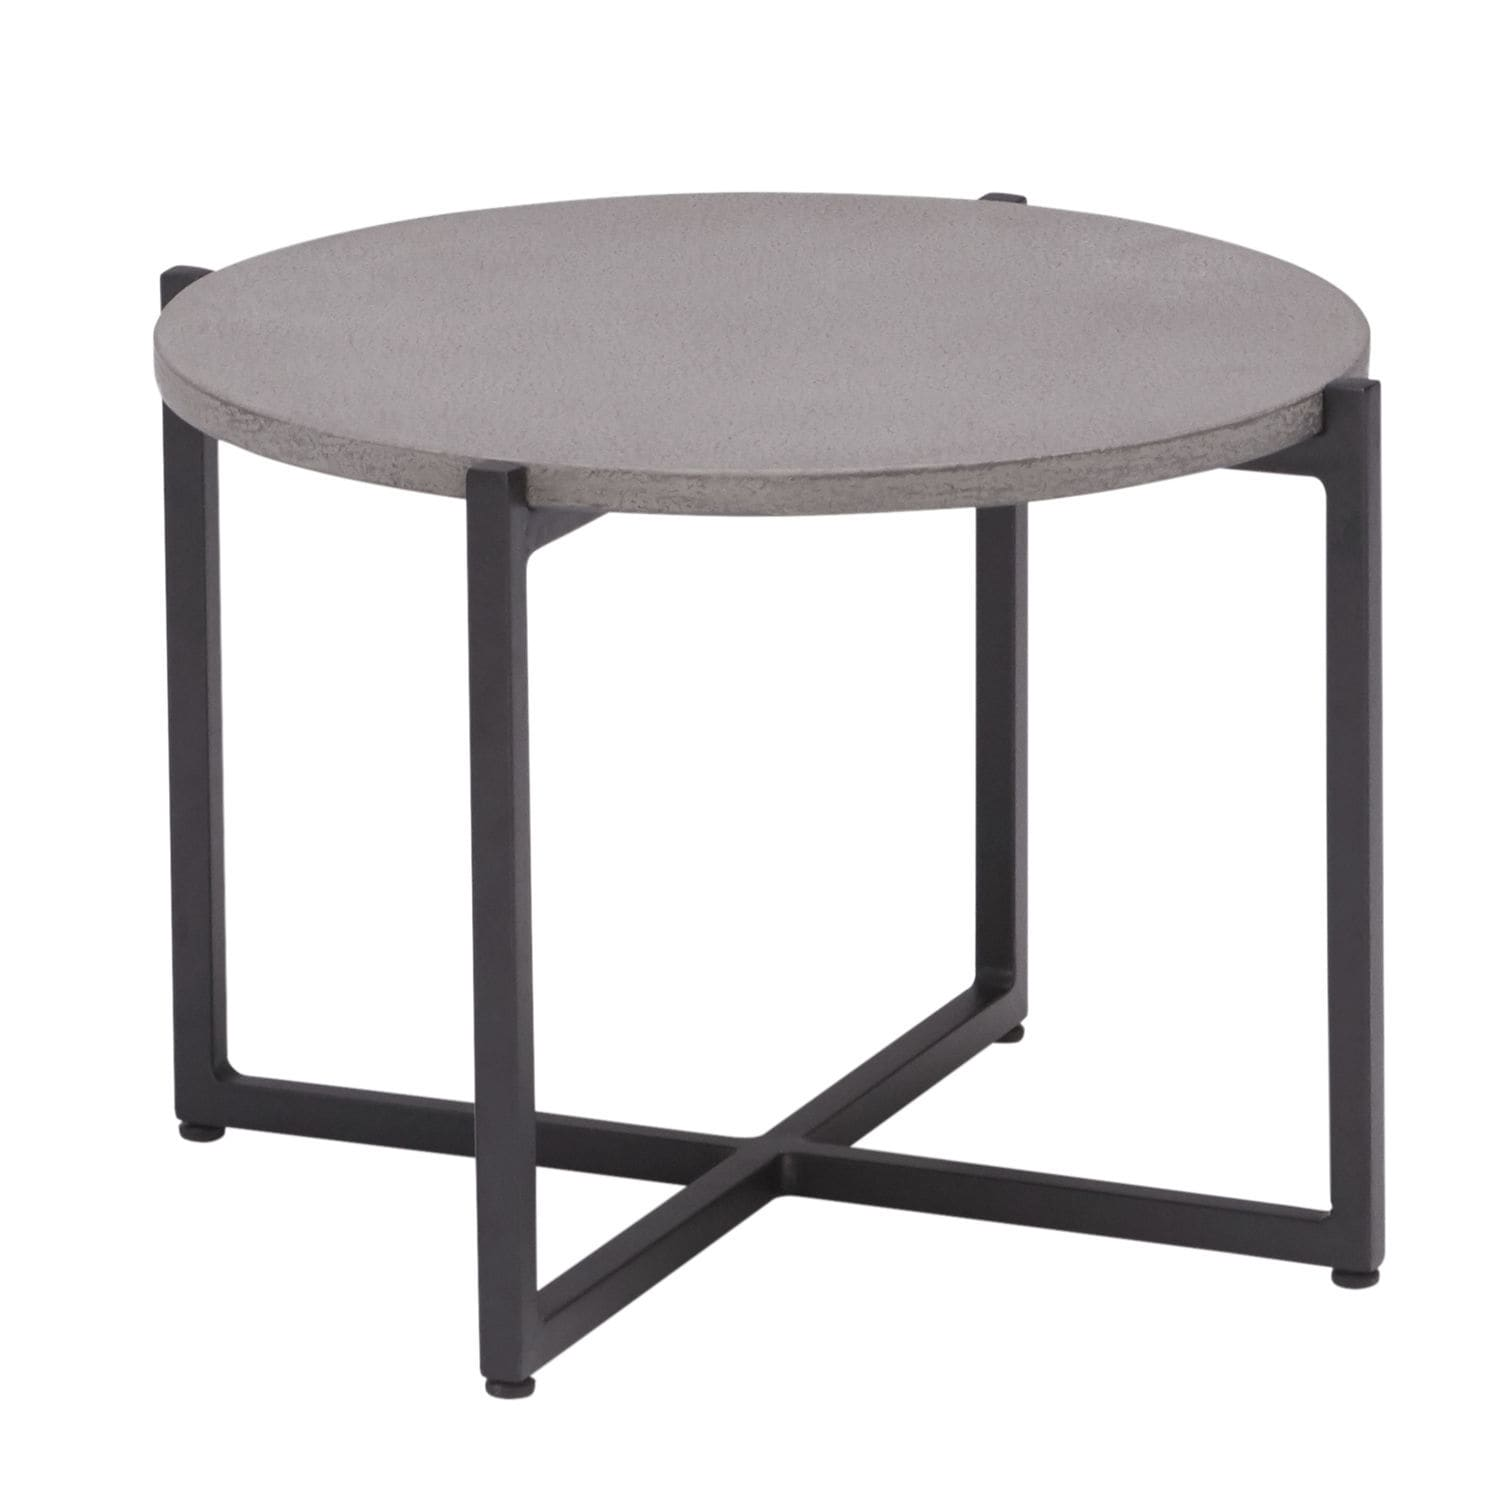 Table d\'appoint contemporaine / en aluminium / ronde / de jardin ...